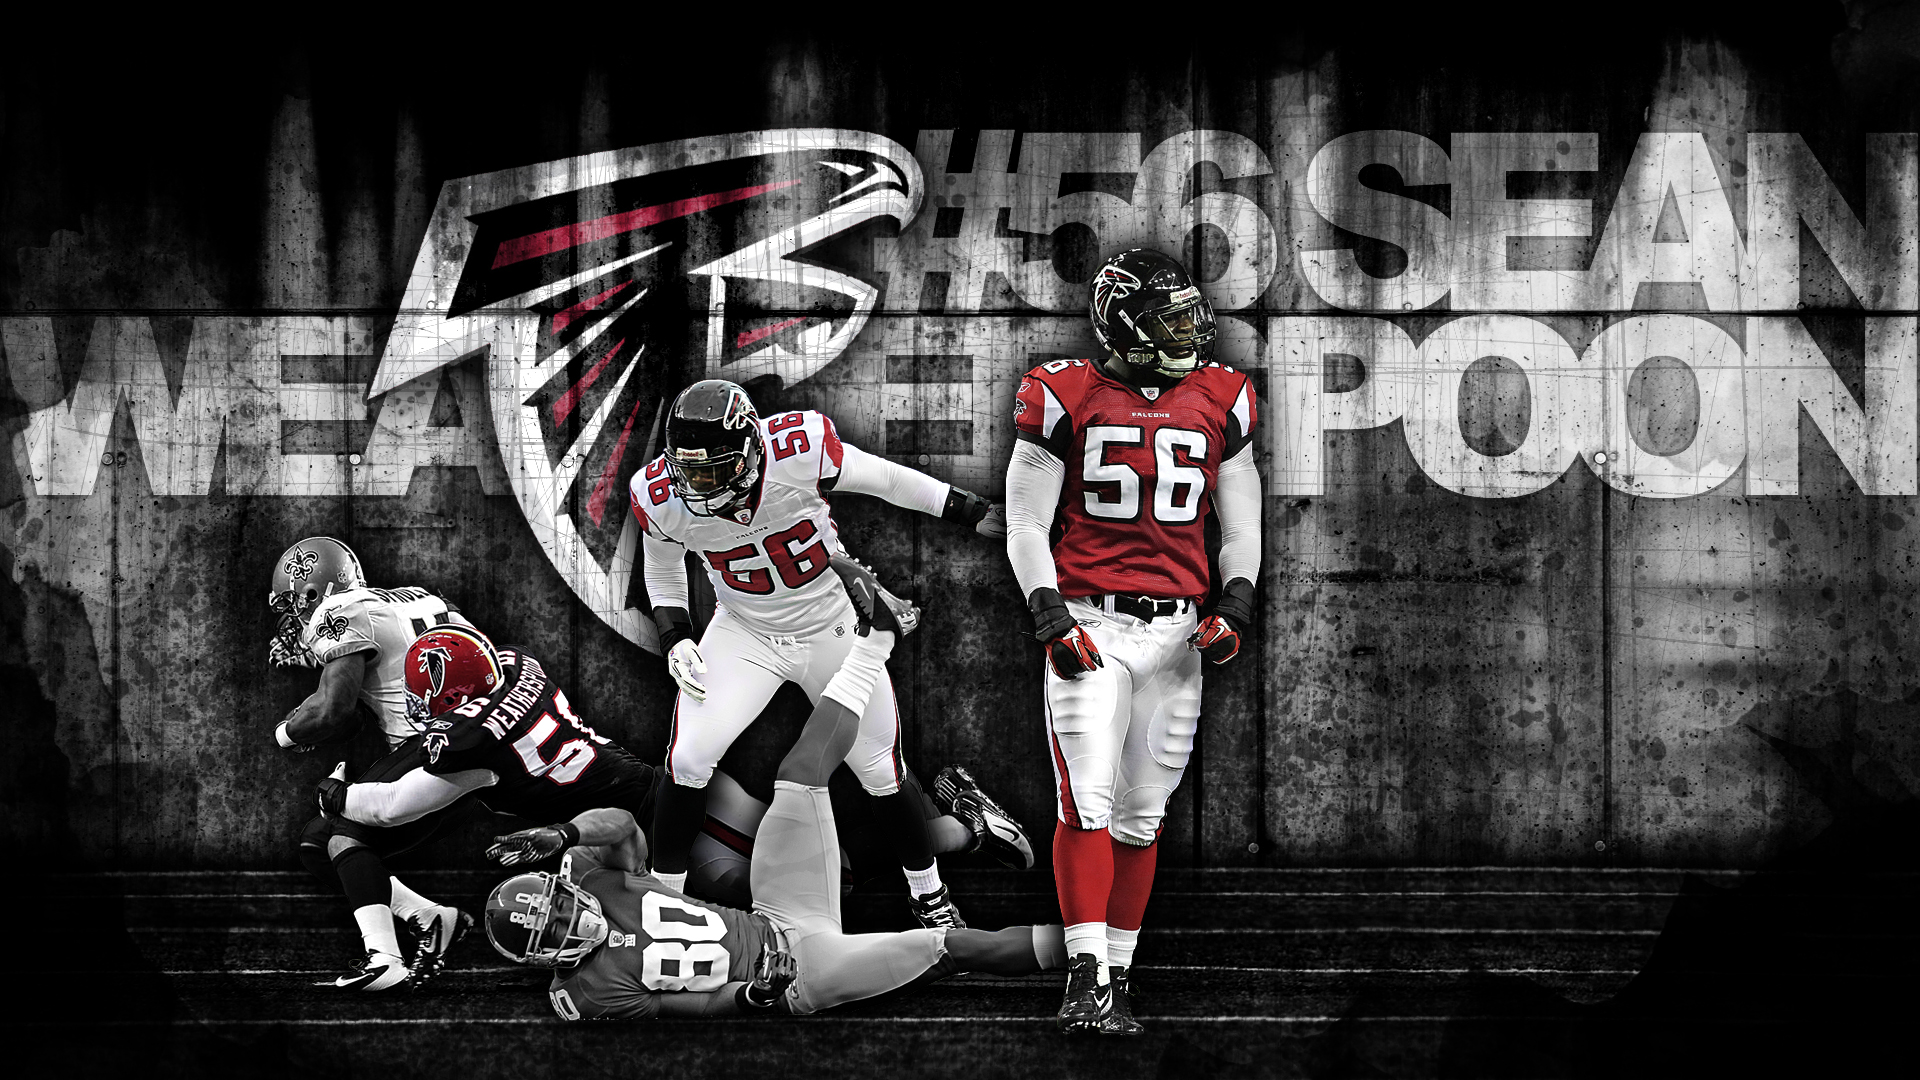 Atlanta Falcon Wallpapers Group 60: Sean Weatherspoon By Crebagger On DeviantArt